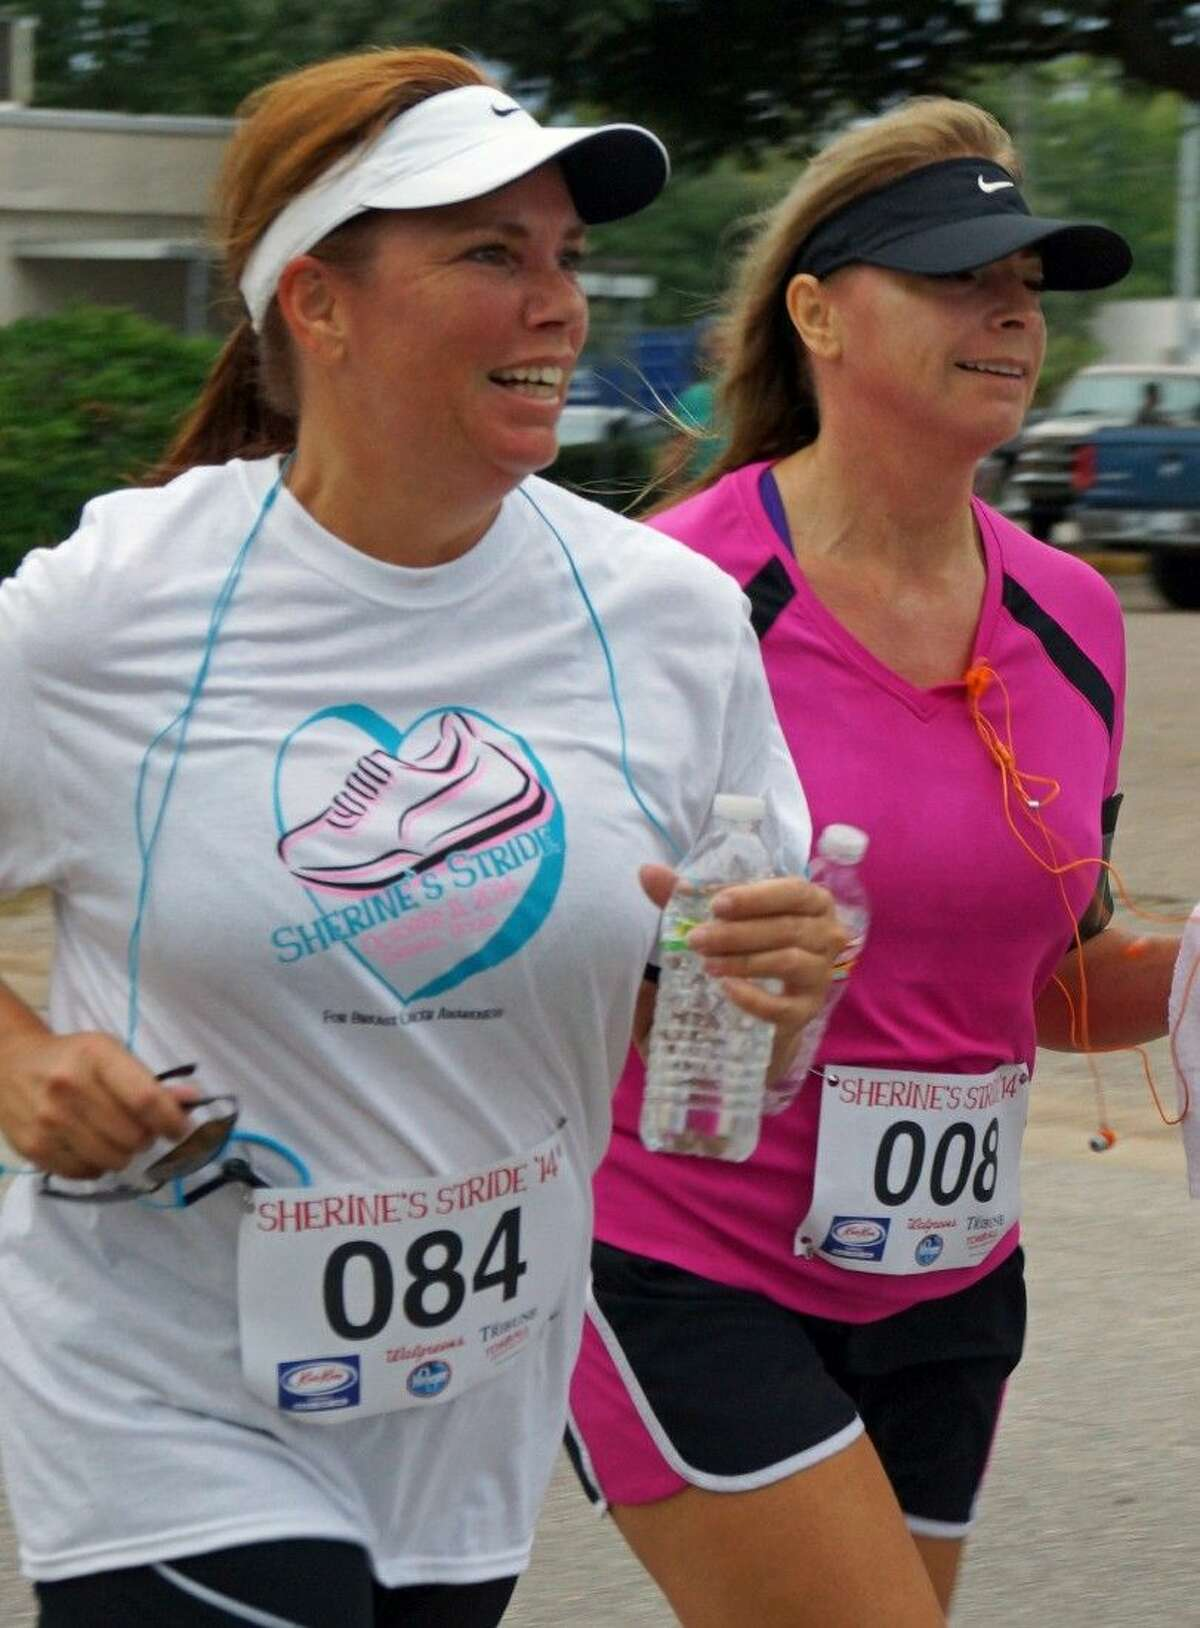 Runners at the City of Tomball's Second annual 5K